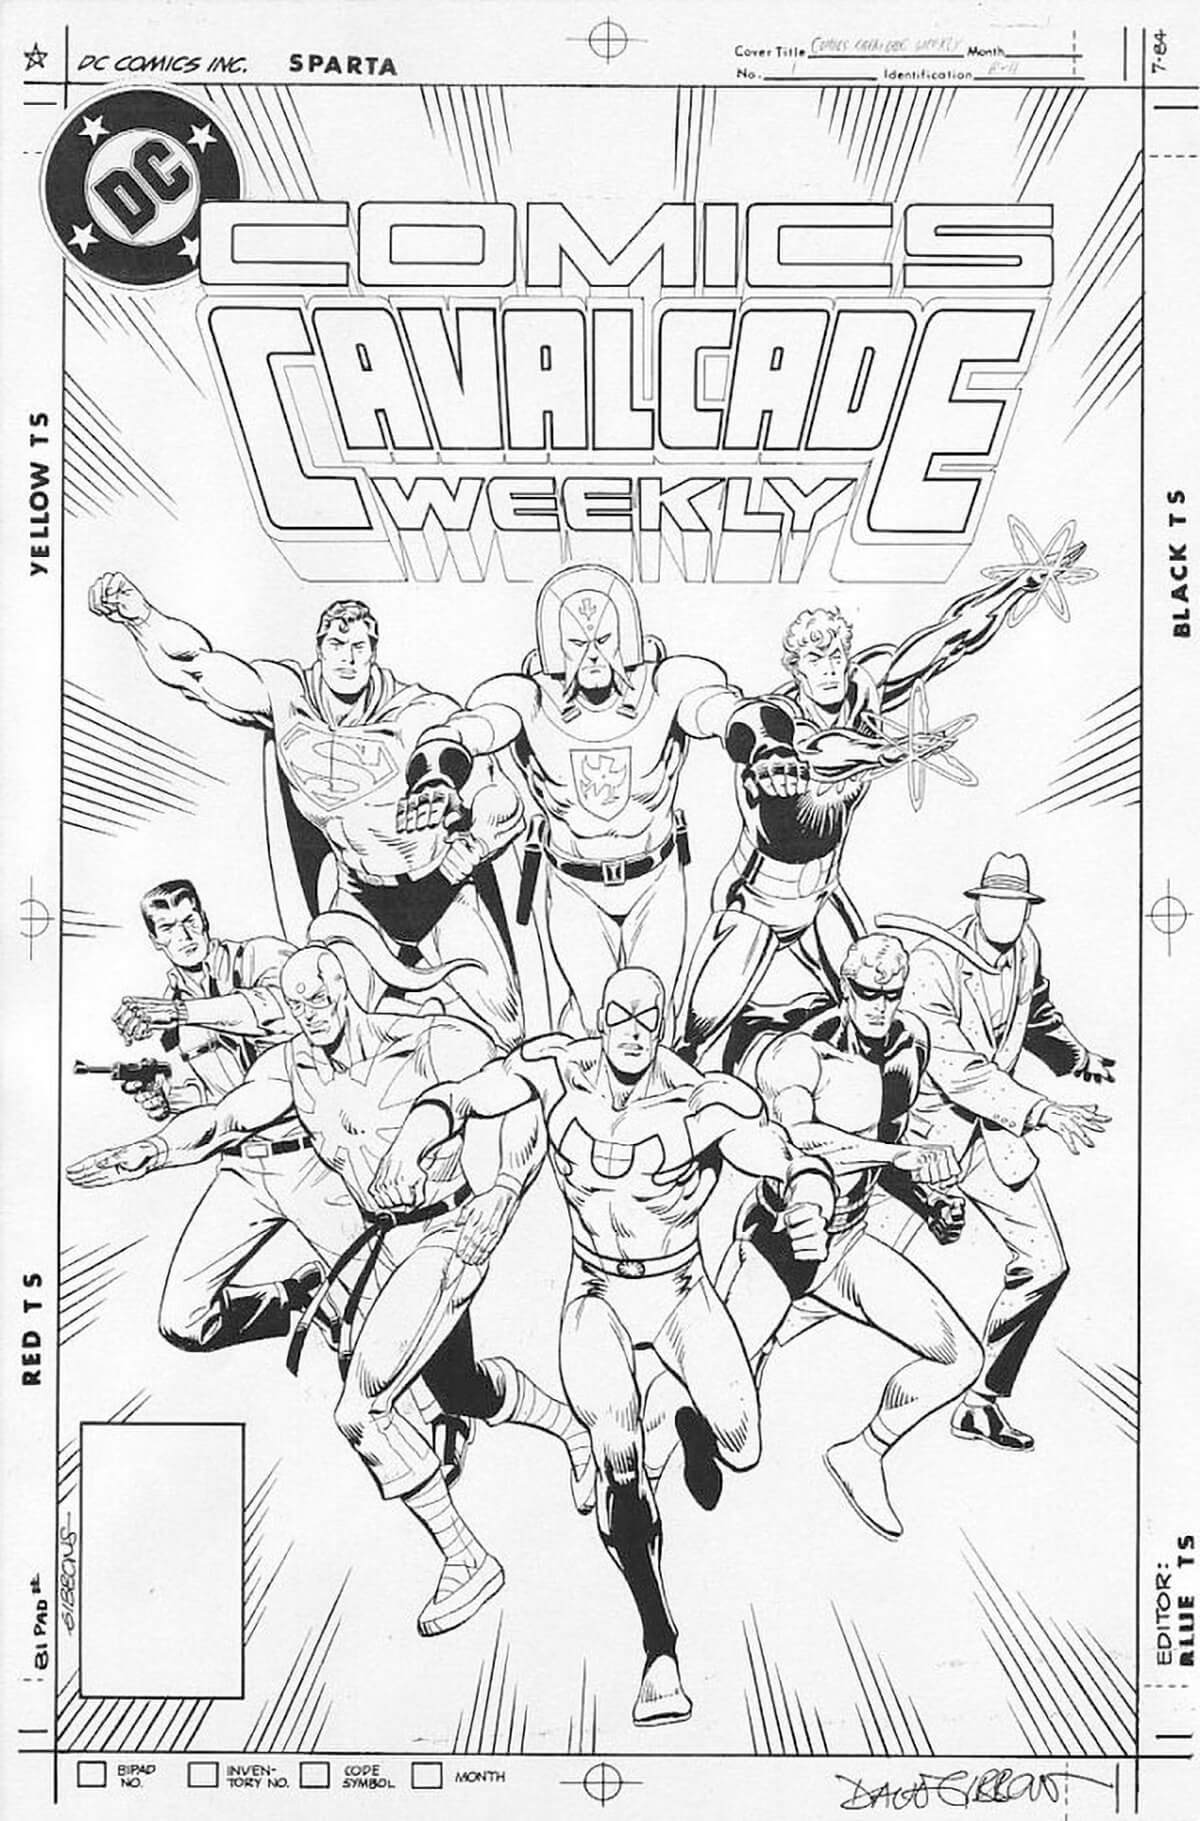 Comics Cavalcade Weekly Cover by Dave Gibbons